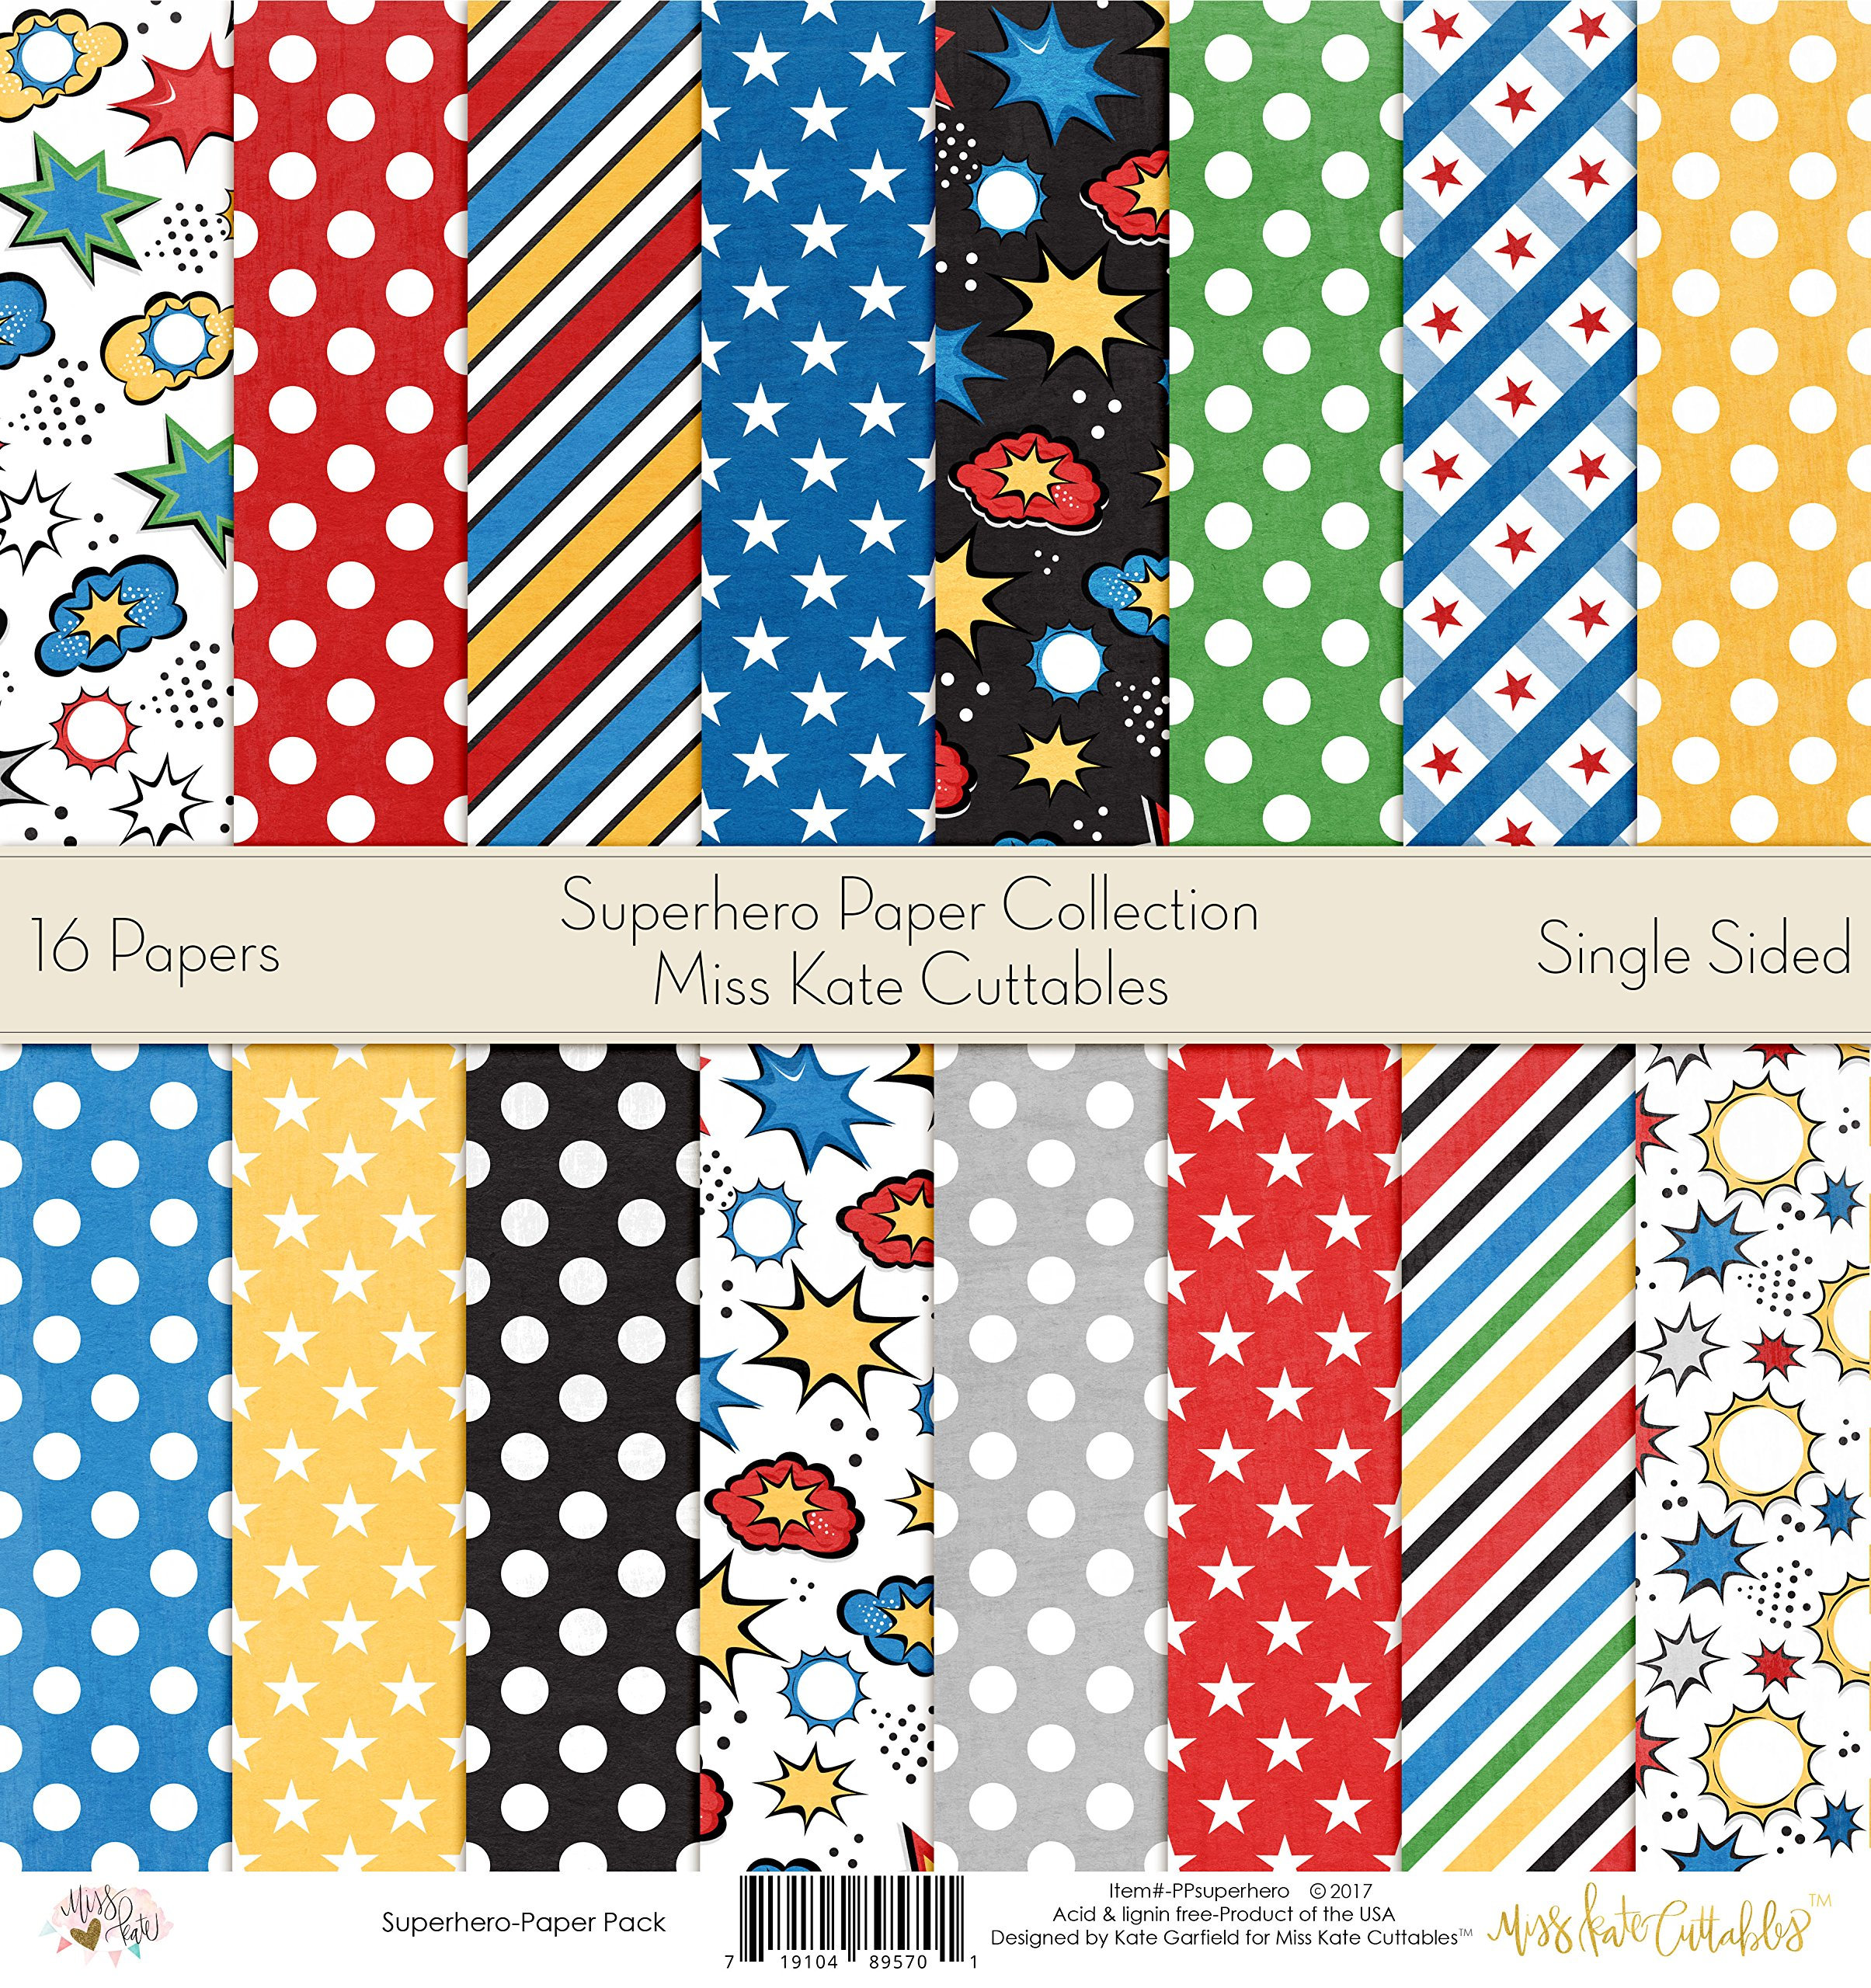 Pattern Paper Pack - Superhero - Scrapbook Card Stock Single-Sided 12''x12'' Collection Includes 16 Sheets - by Miss Kate Cuttables